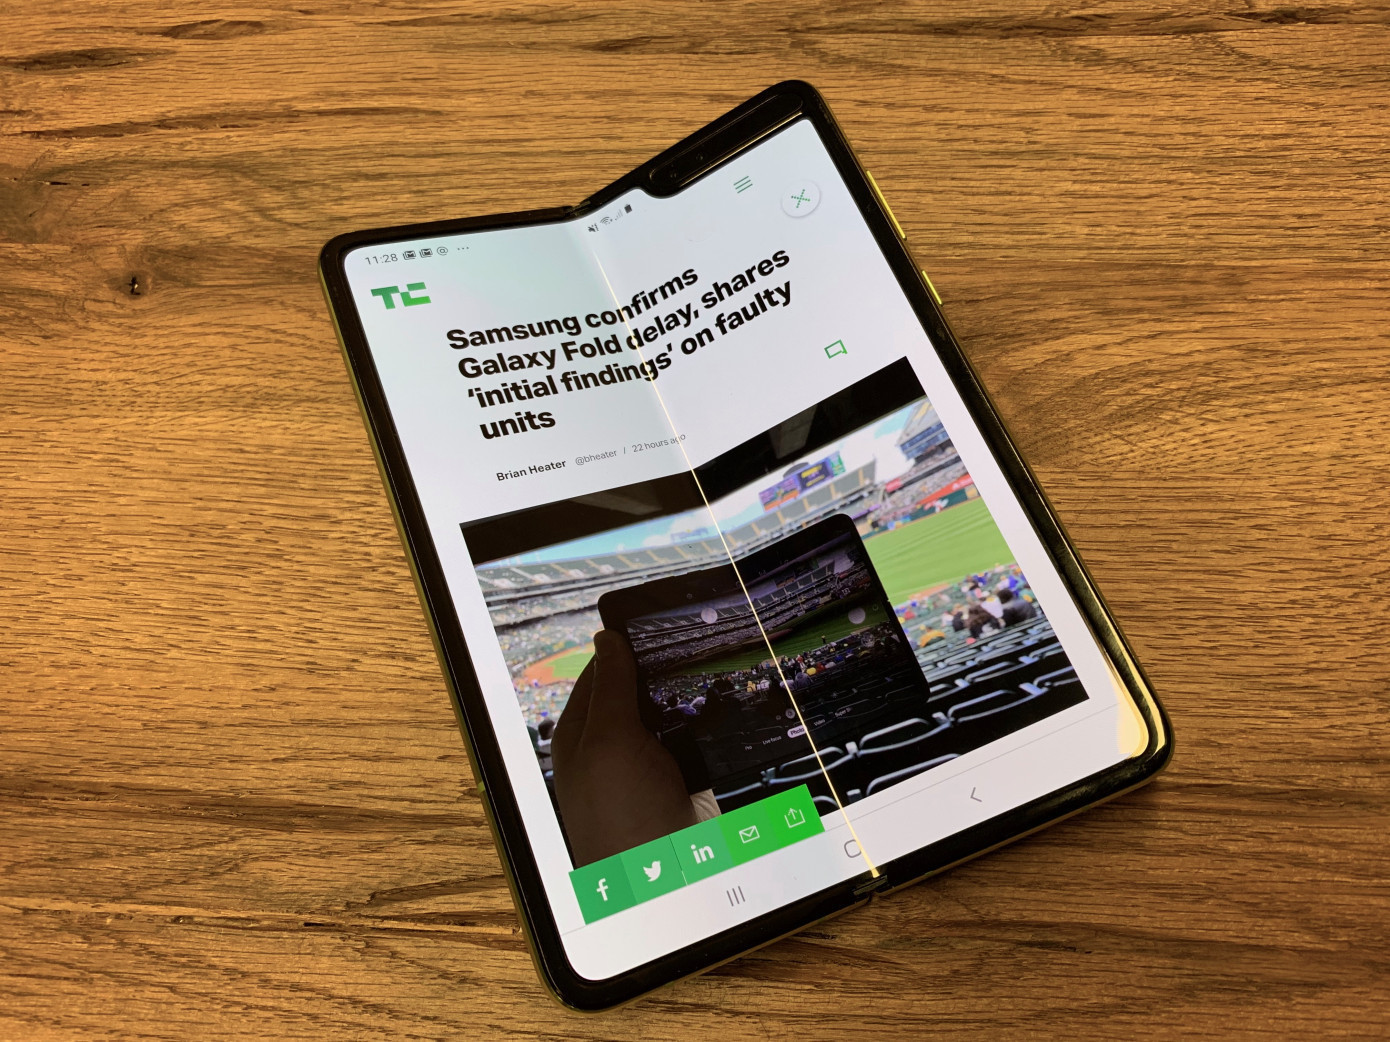 AT&T cancels Samsung Galaxy Fold orders